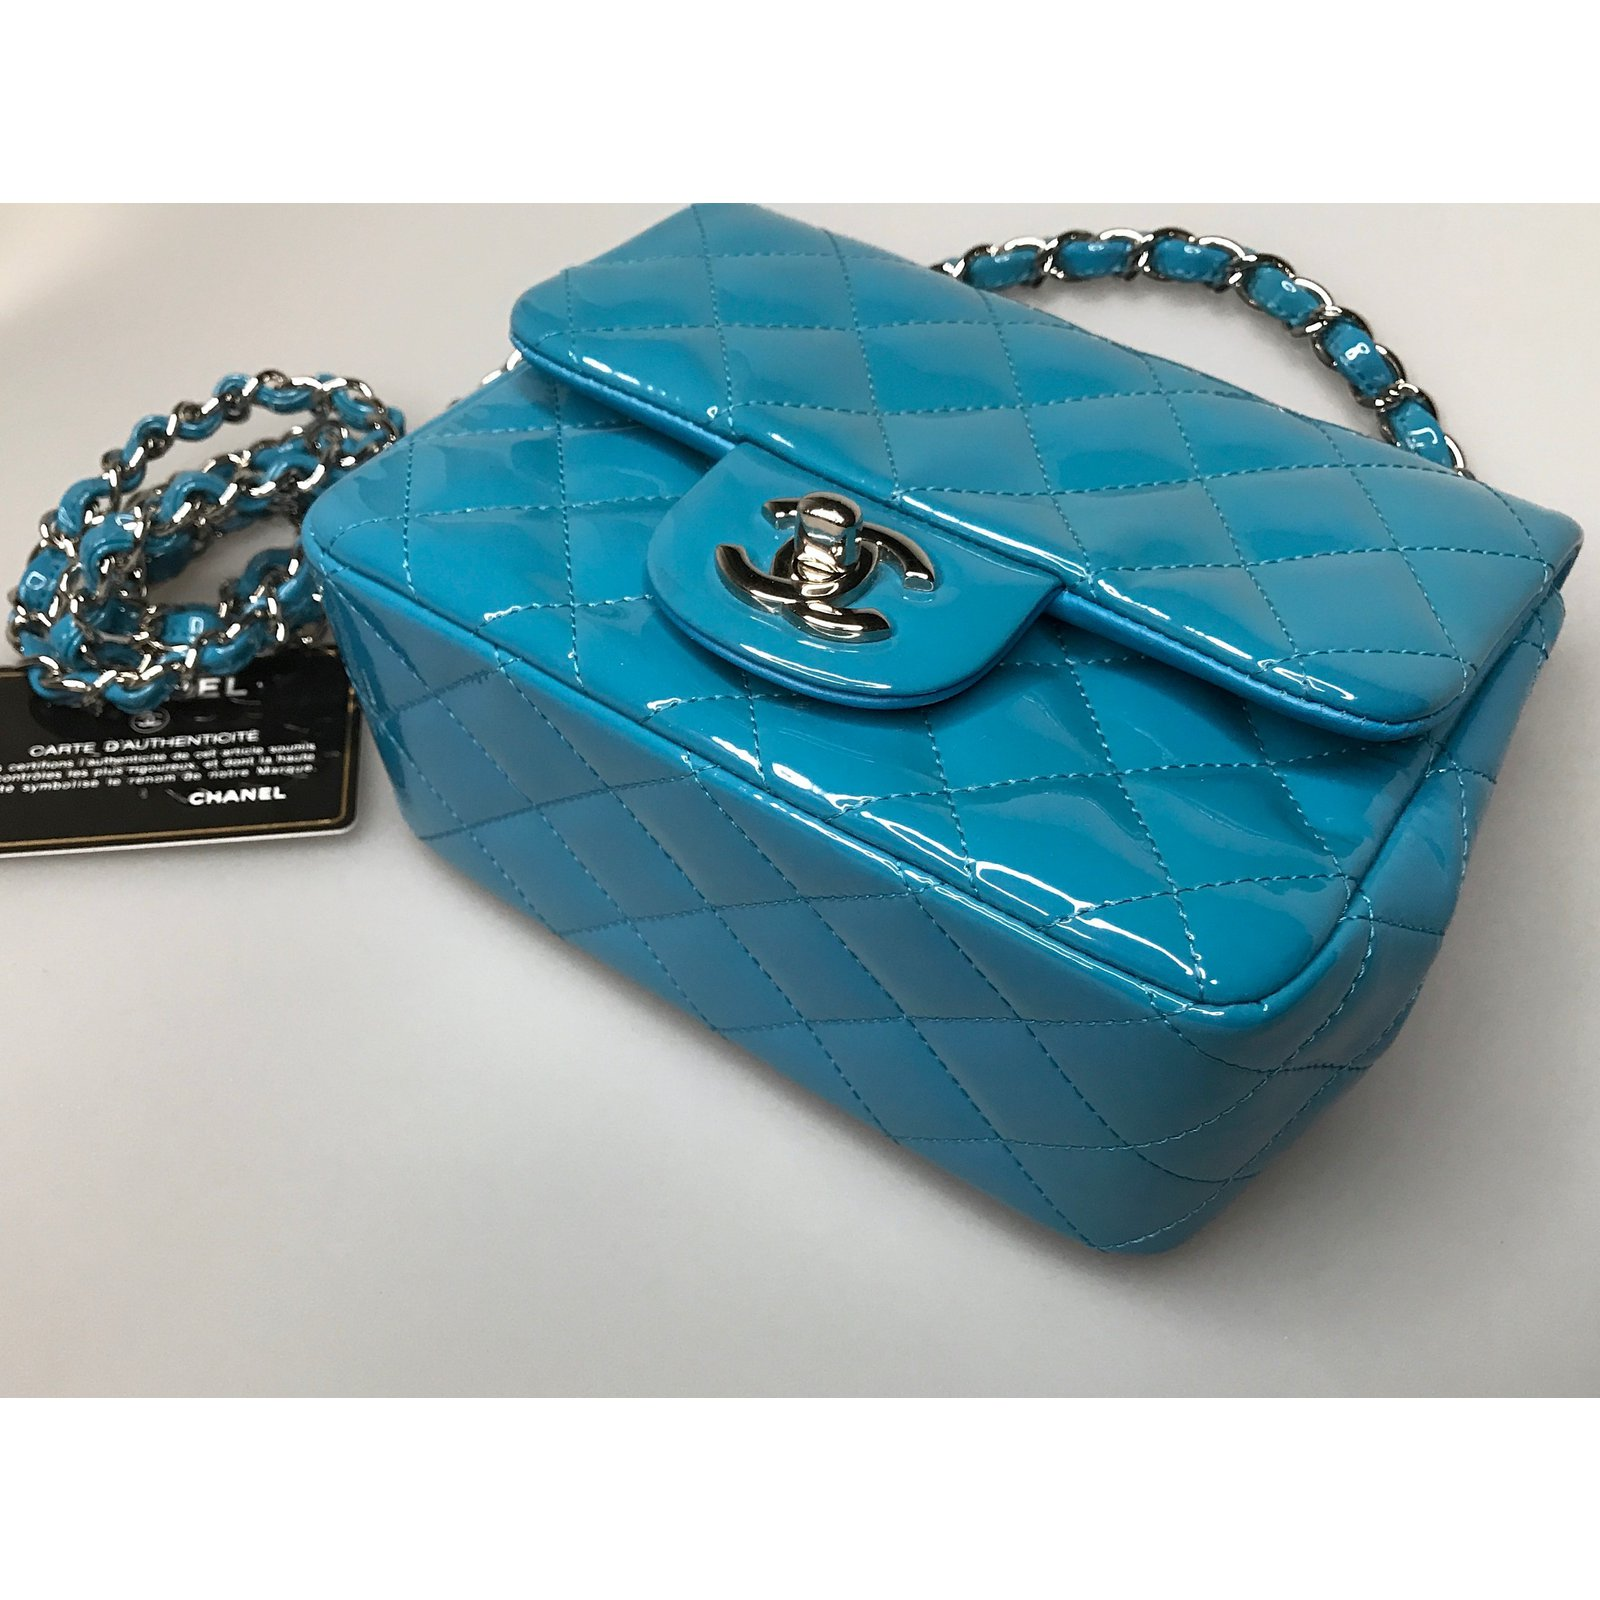 705a403583e5 Facebook · Pin This. Chanel With card! Mini square flap bag timeless  Handbags Patent leather Blue ...